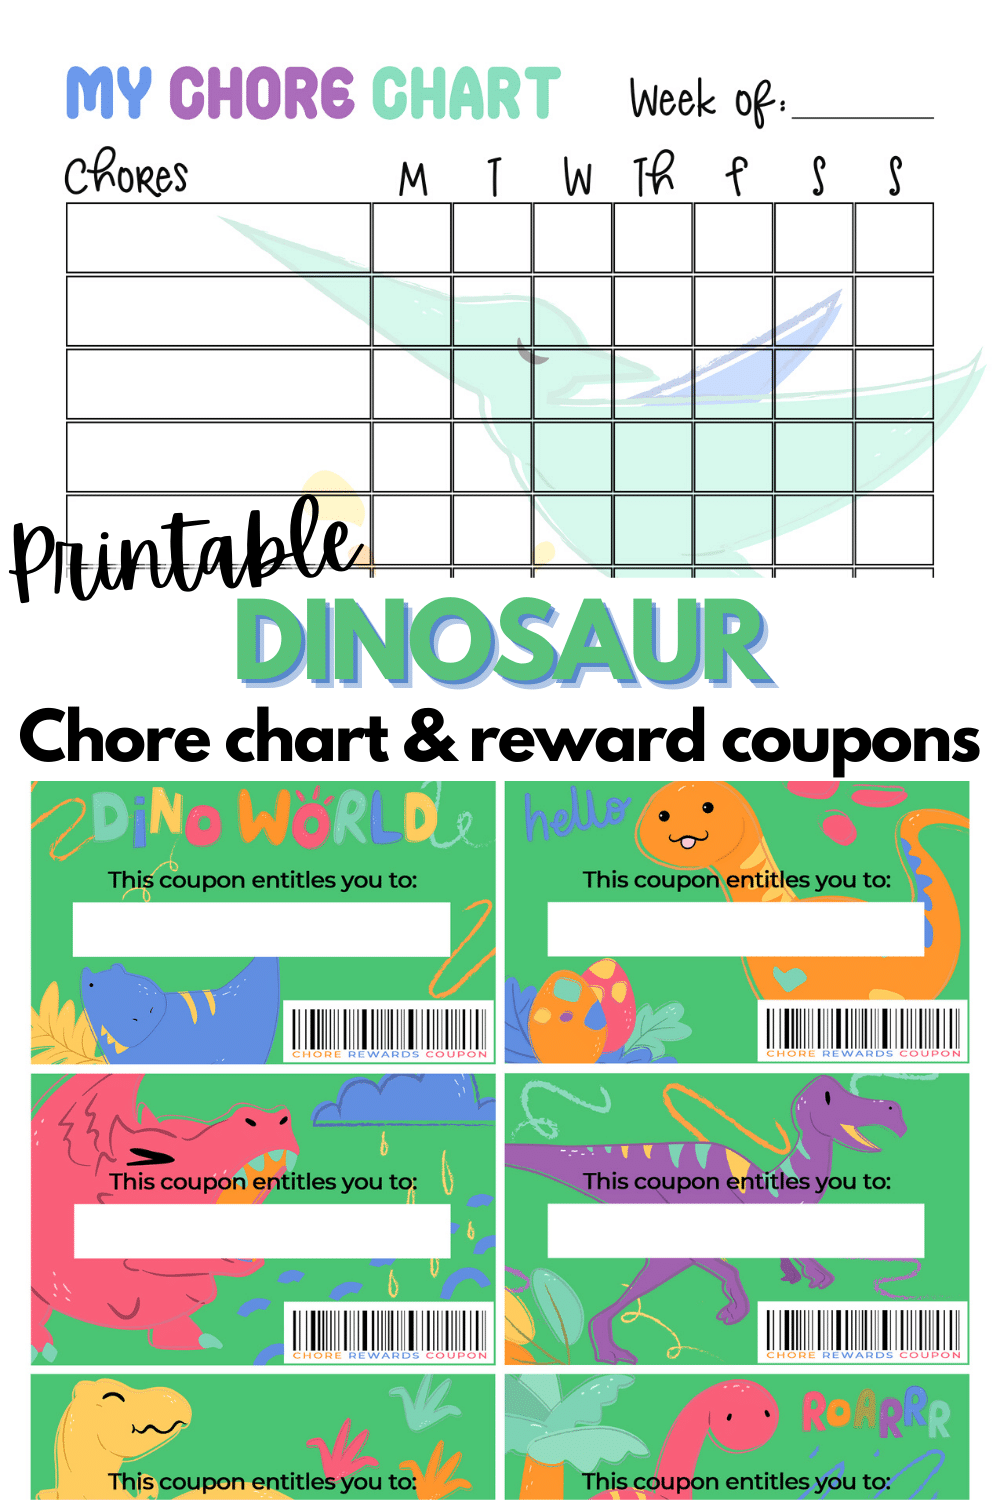 This printable dinosaur chore chart with reward coupons packet is perfect for kids who love dinos. A useful printable to keep kids on track. #printables #dinosaurs #chorechart via @wondermomwannab